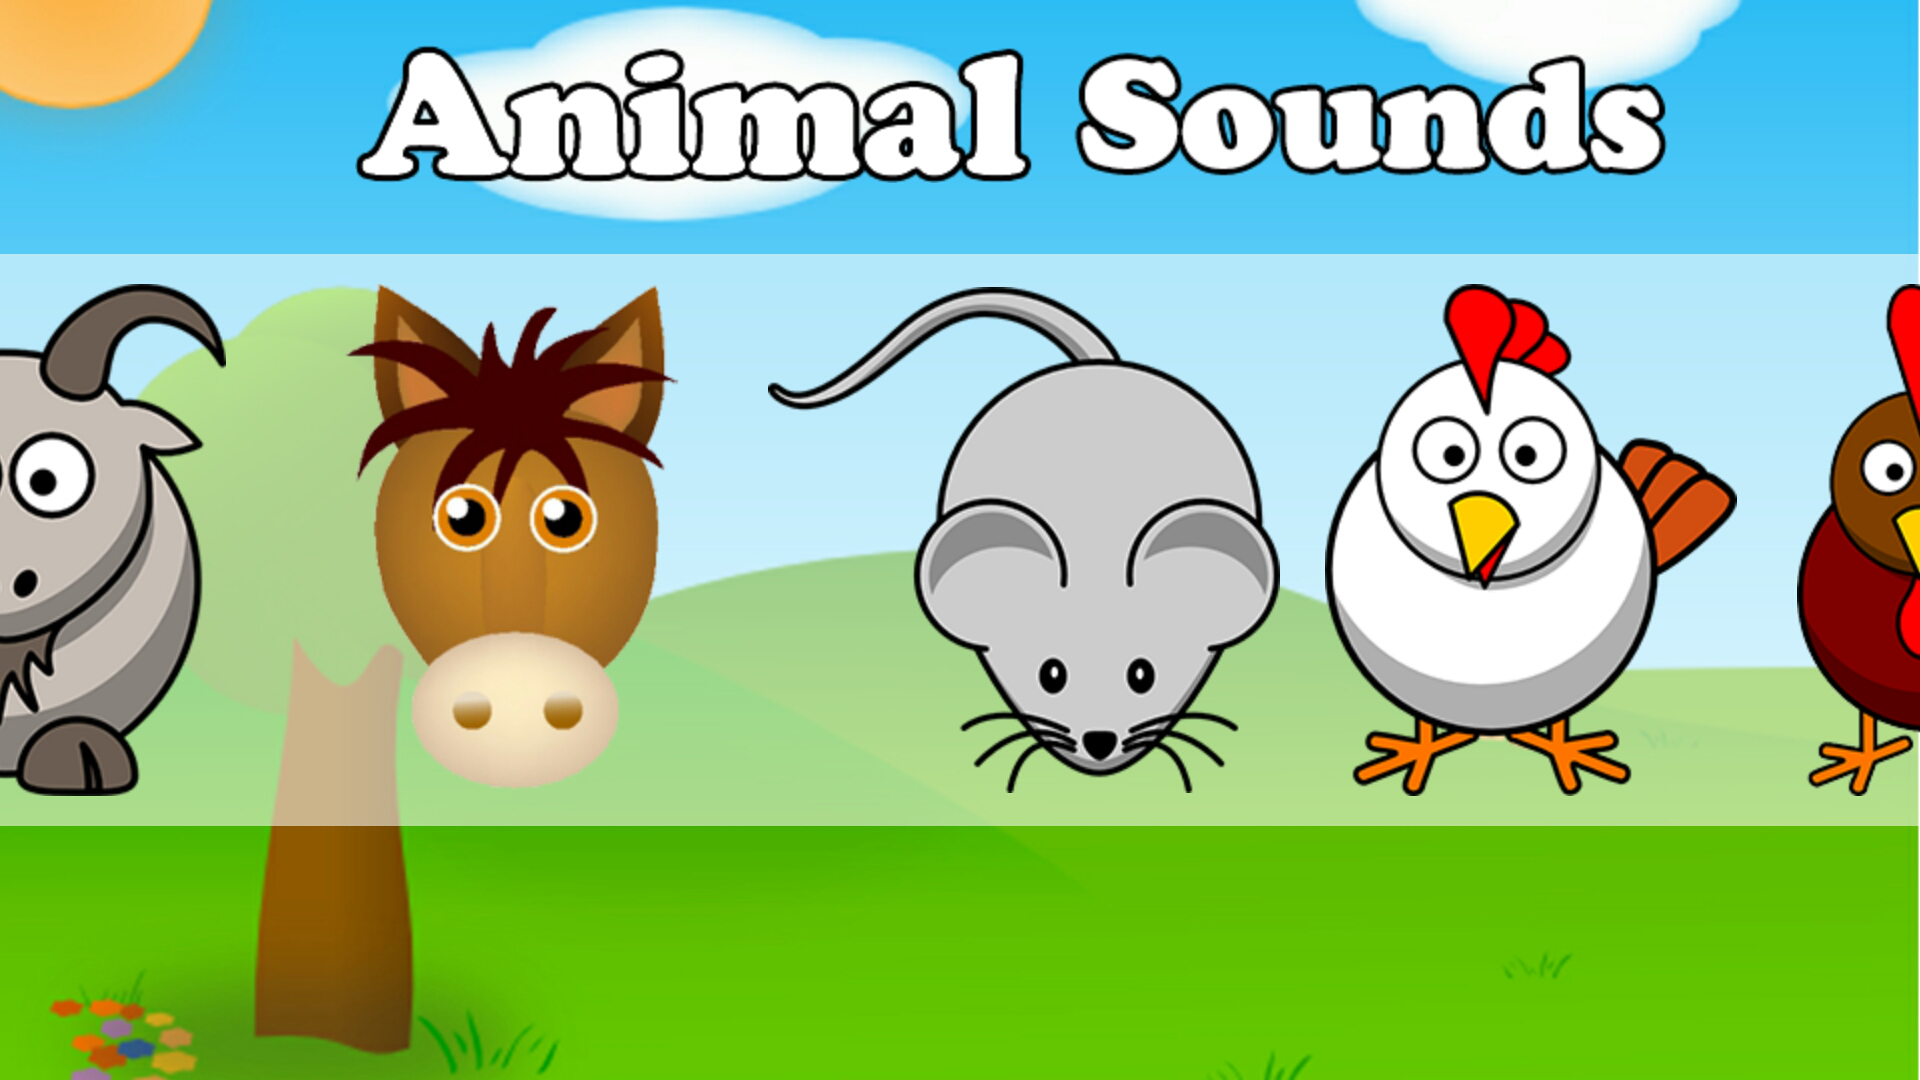 animal sounds description